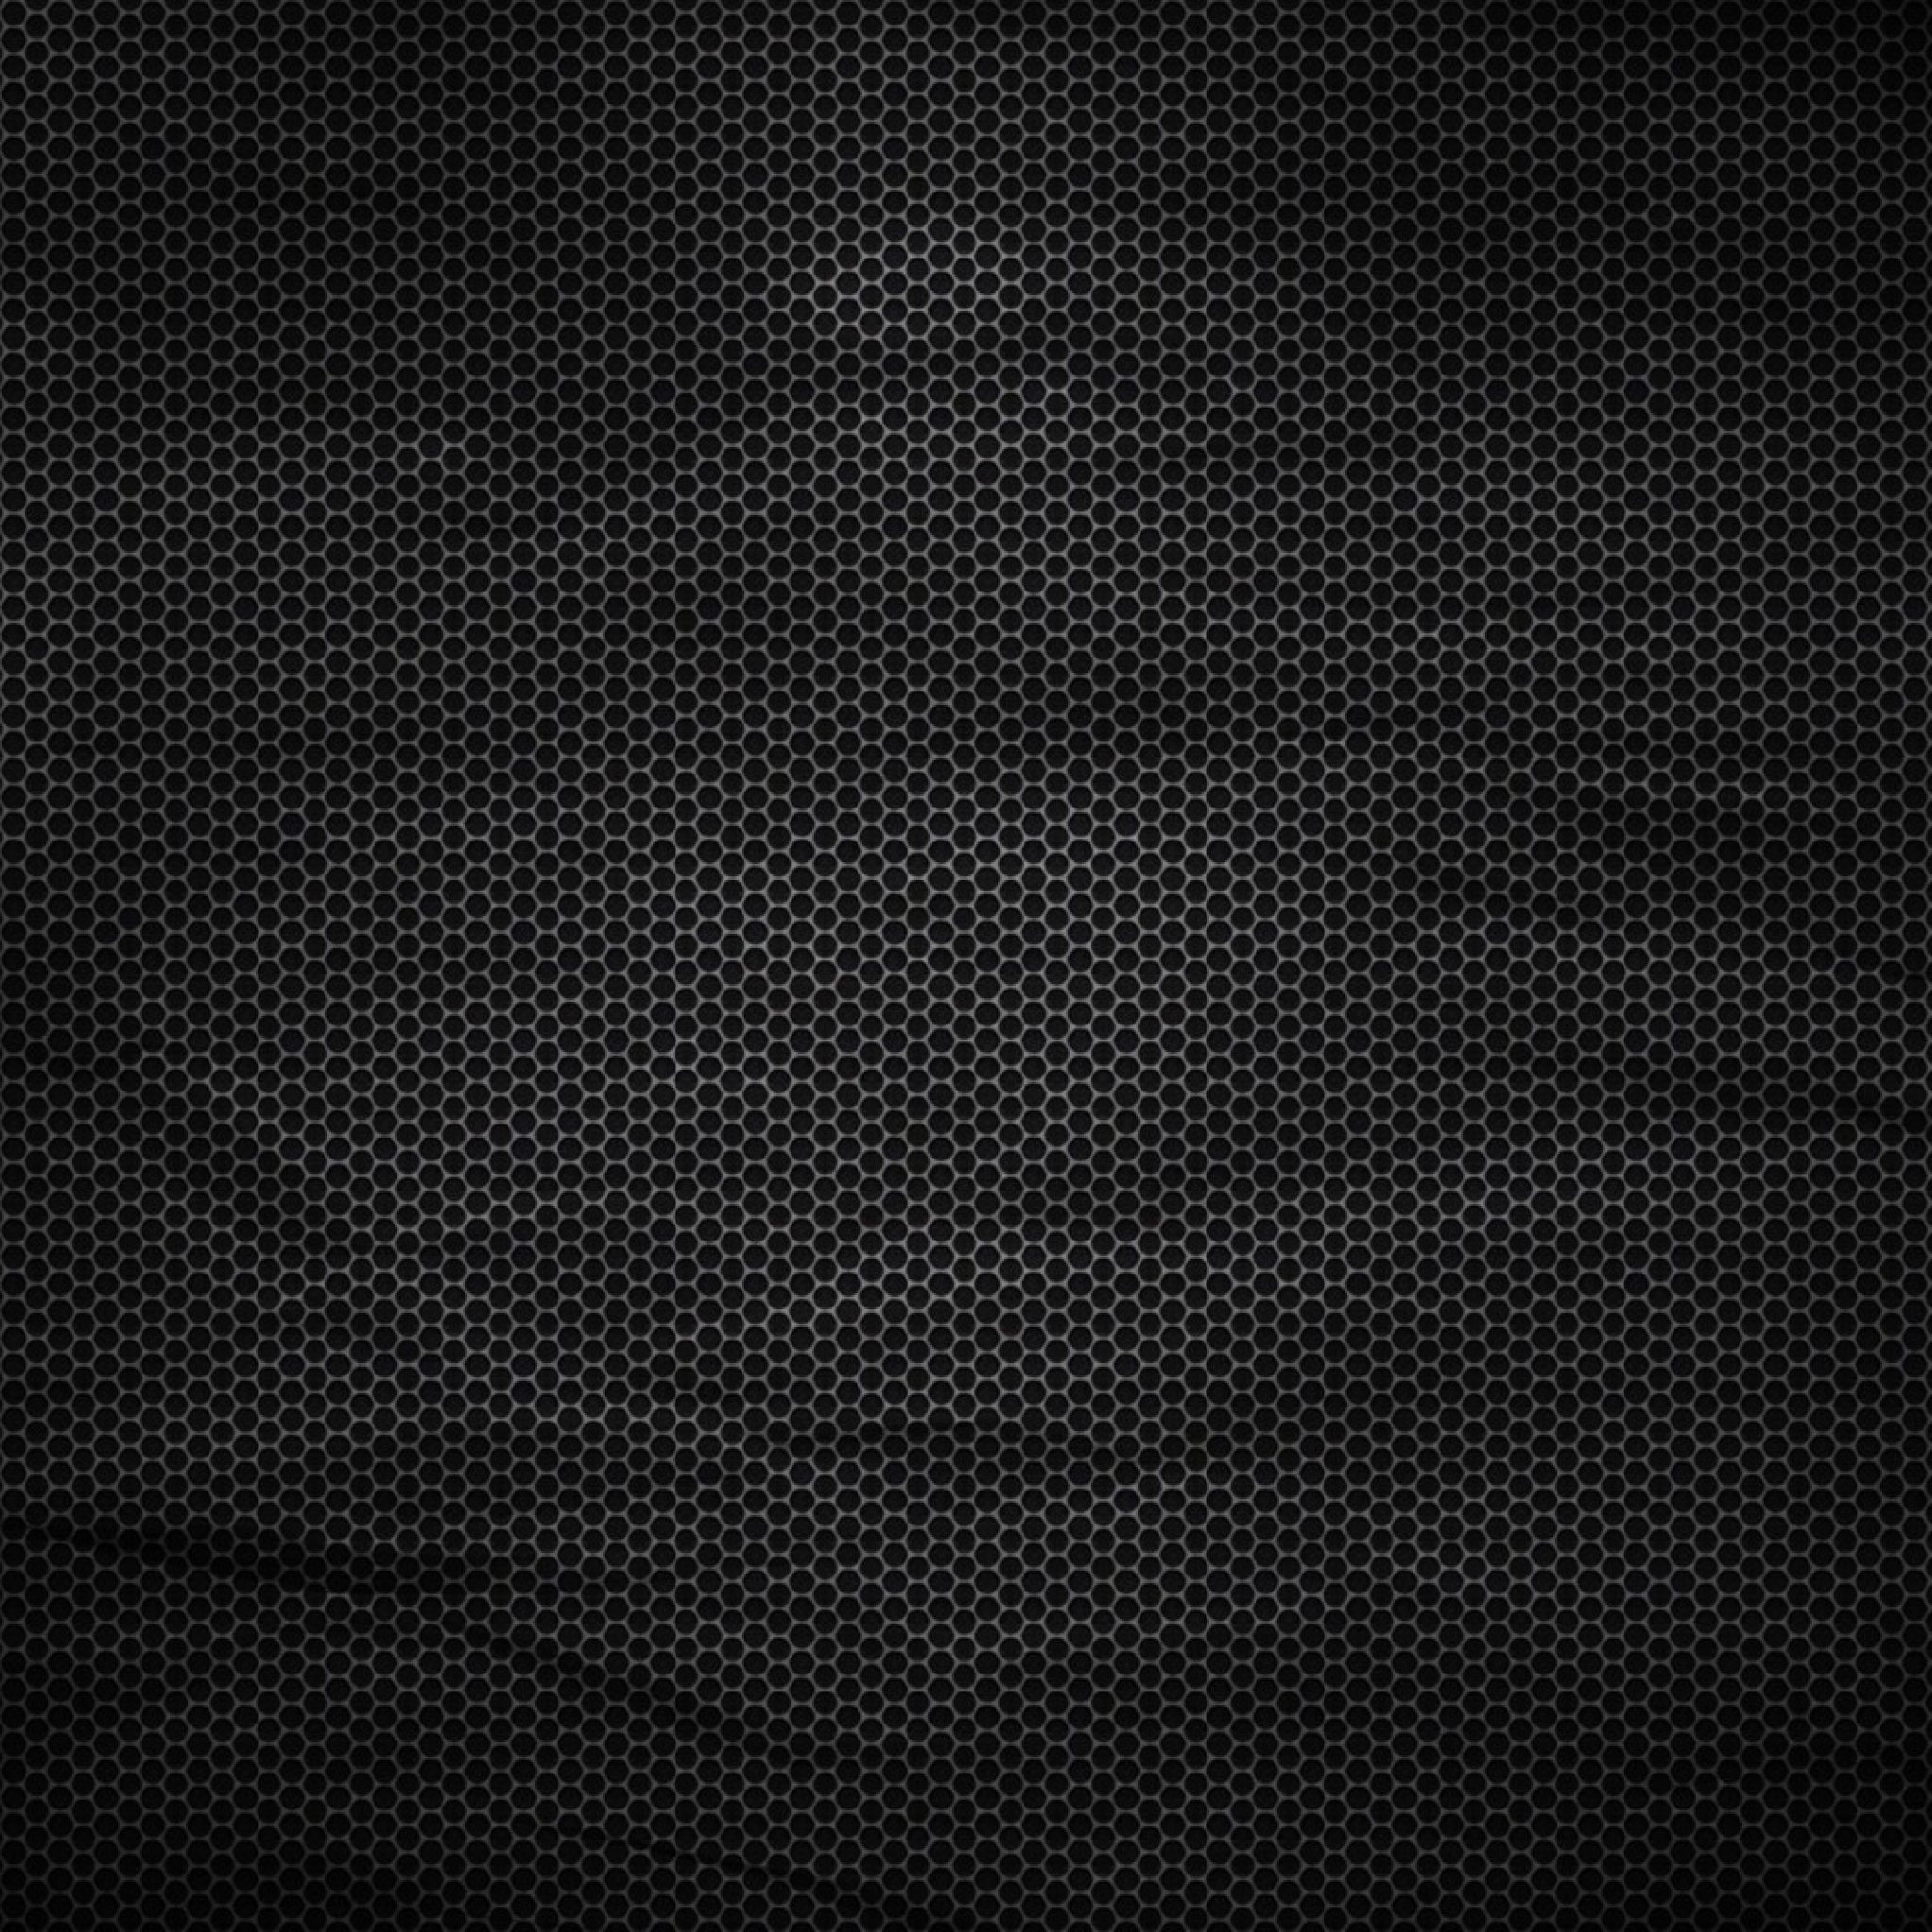 Size Dark Wallpaper Background New iPad Air 4 3 iPad mini Retina 2048x2048